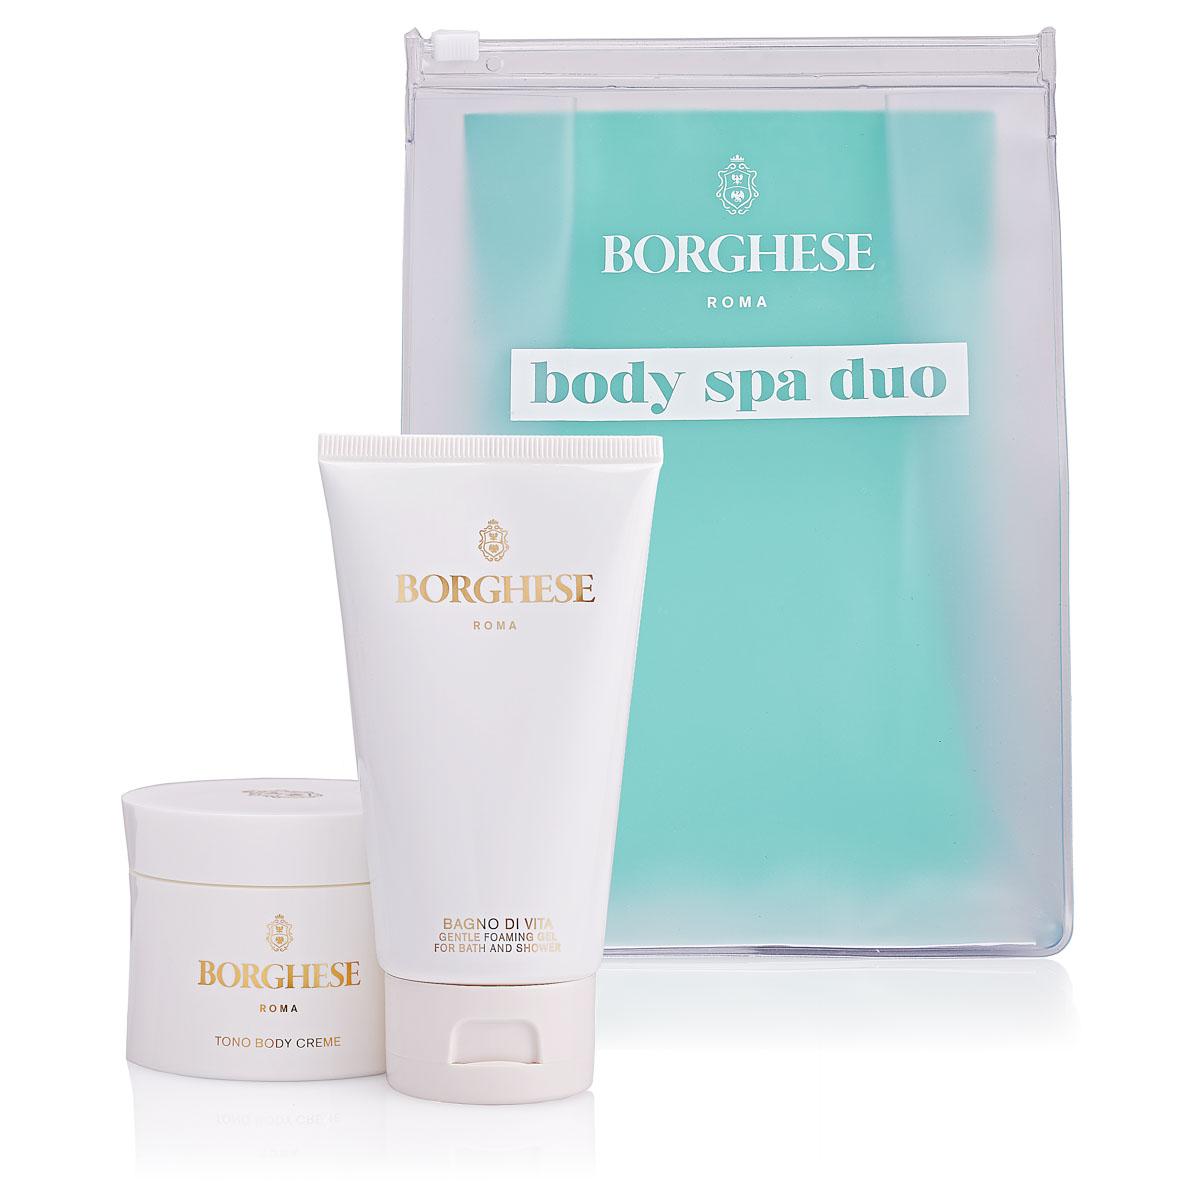 Body Spa Duo